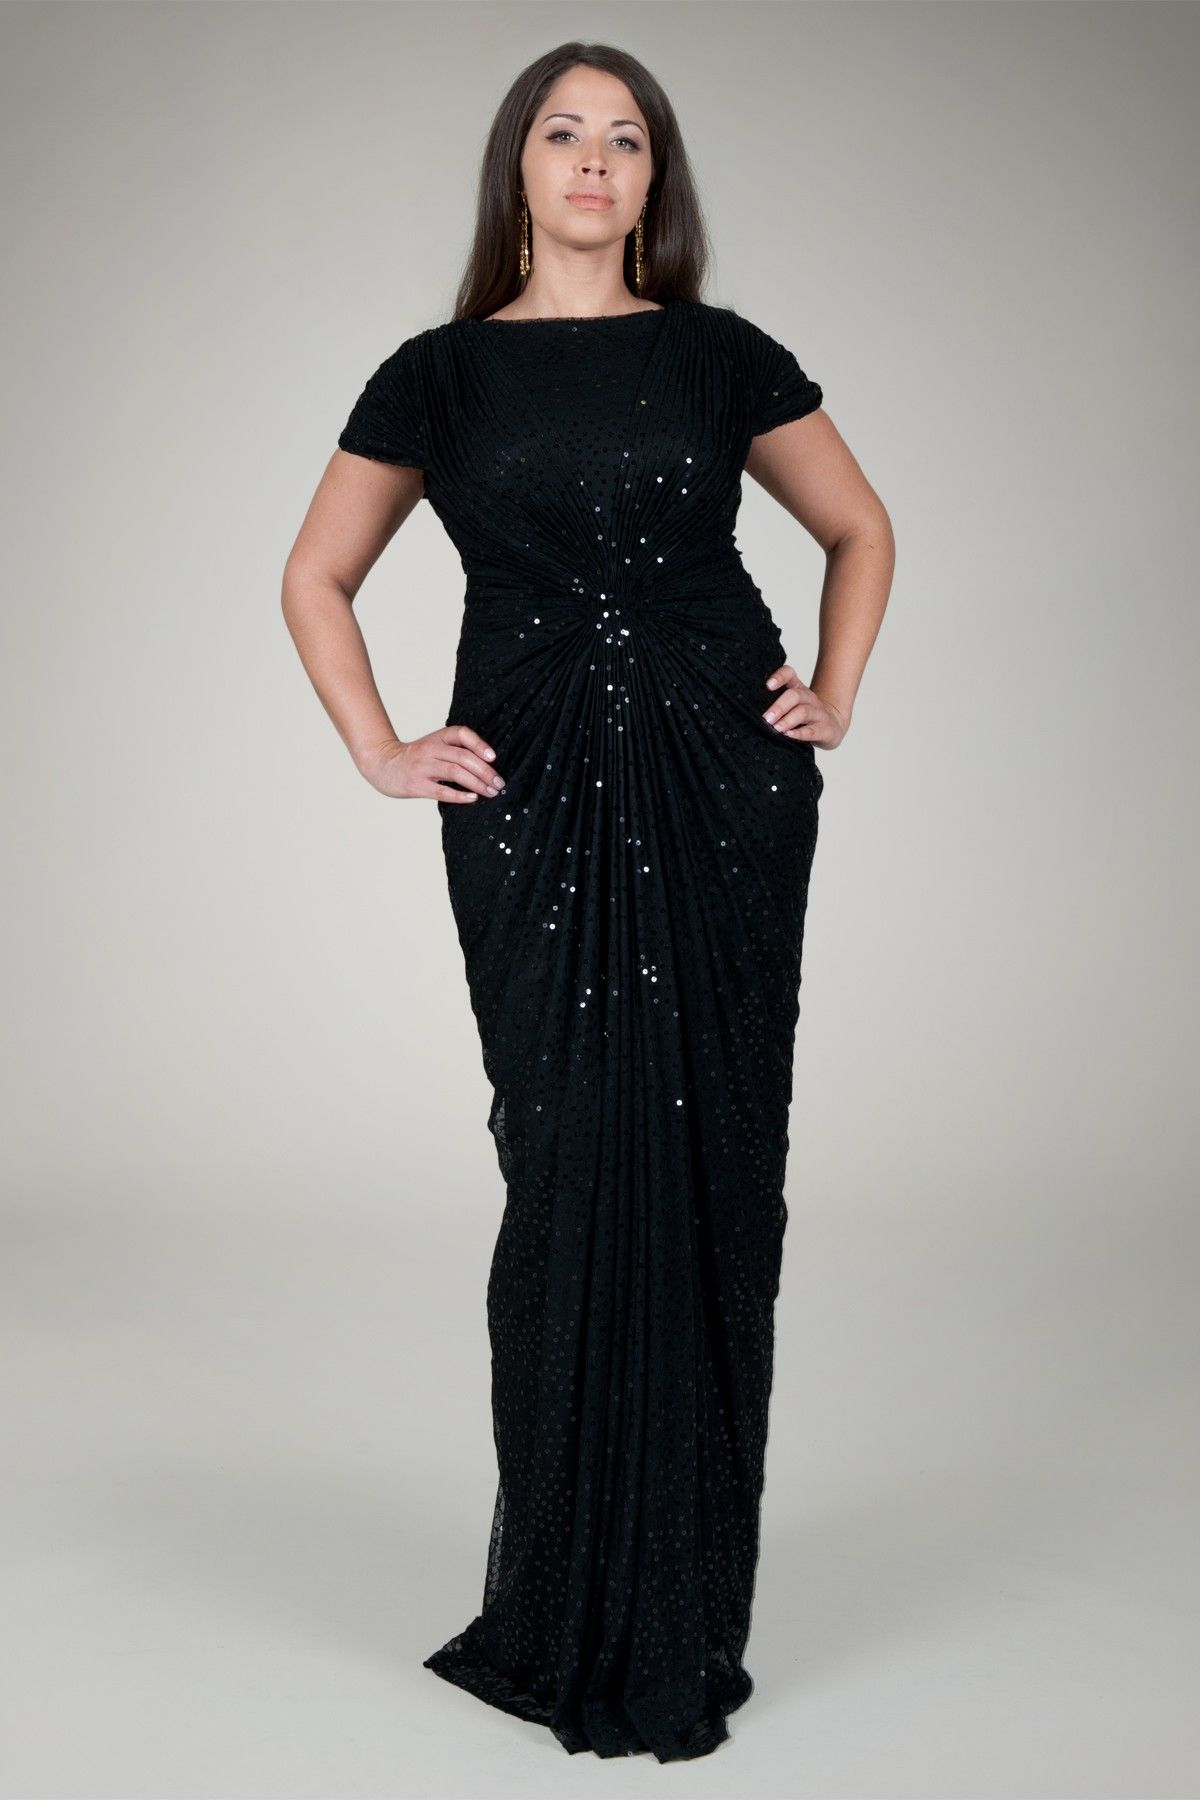 Red carpet sequin gown in black plus size evening shop tadashi